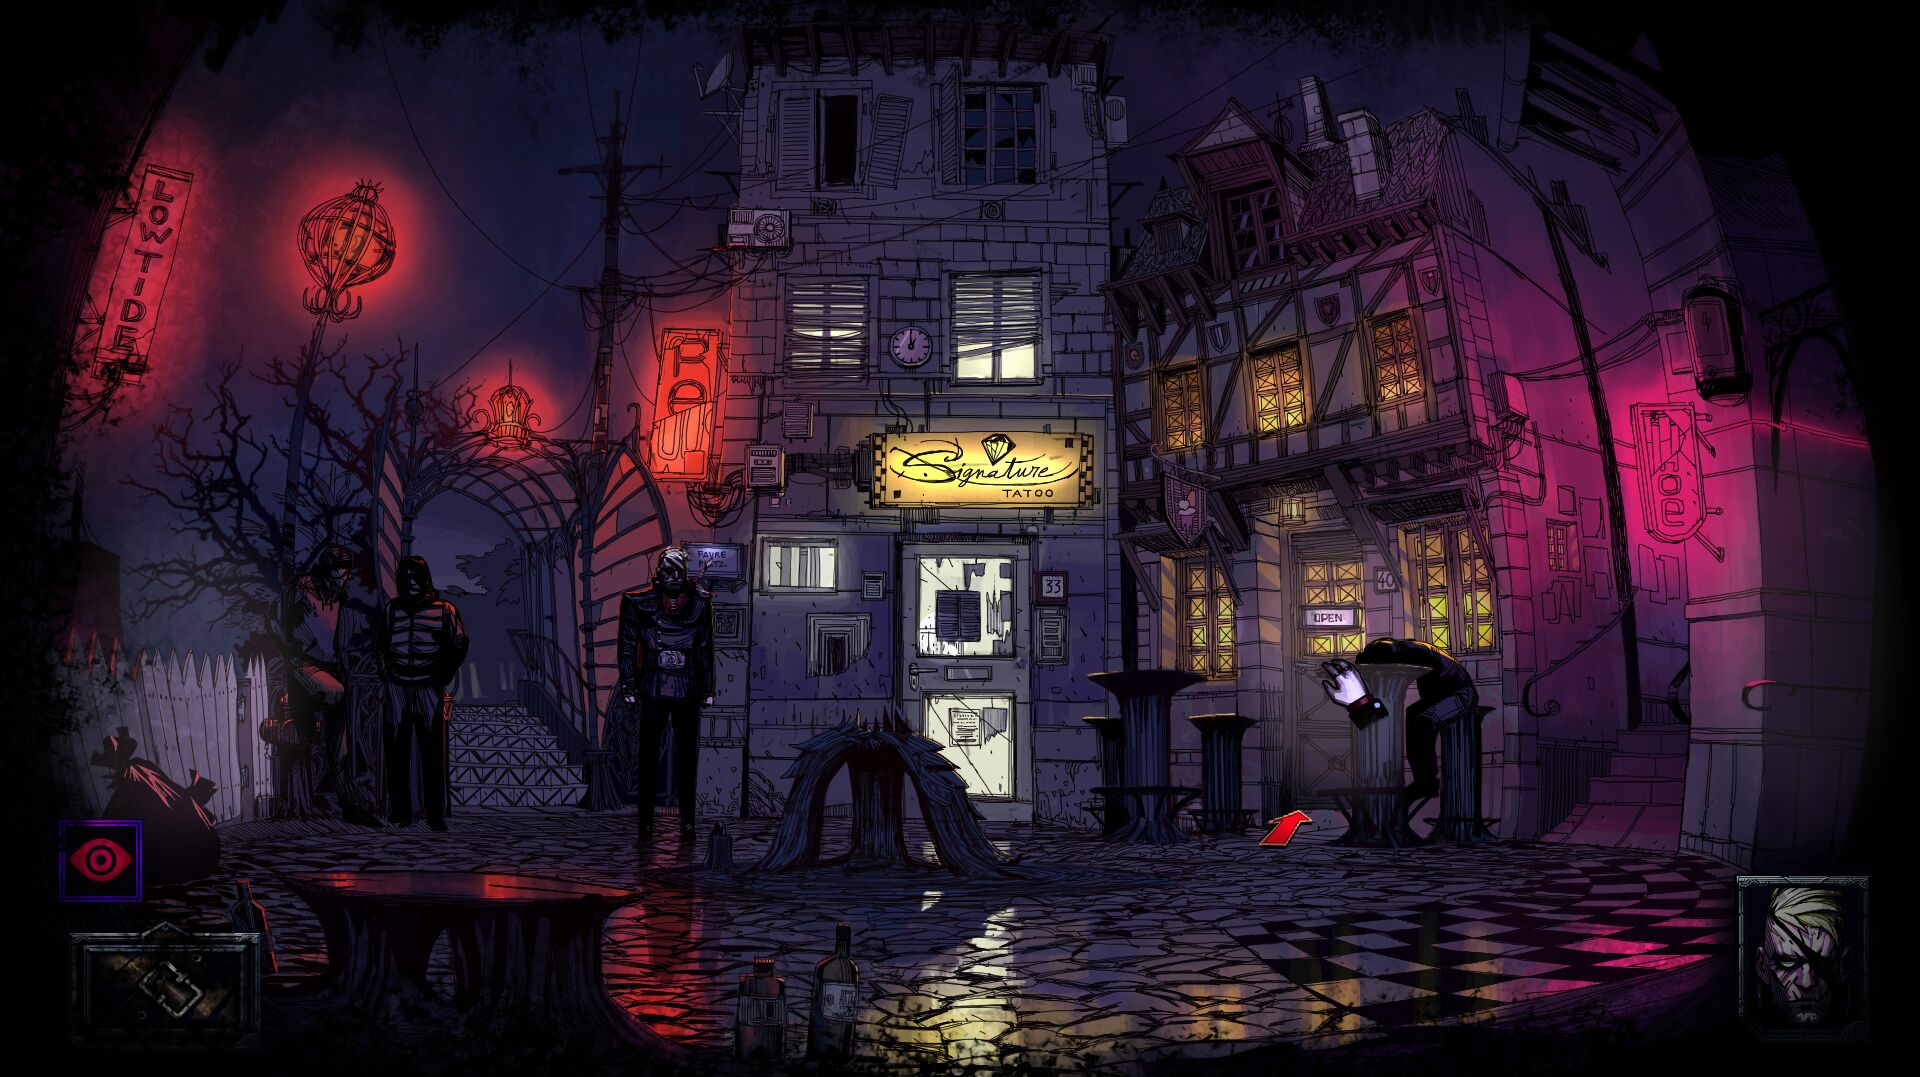 Point & Click adventure The Blind Prophet is 100% Kickstarter Funded